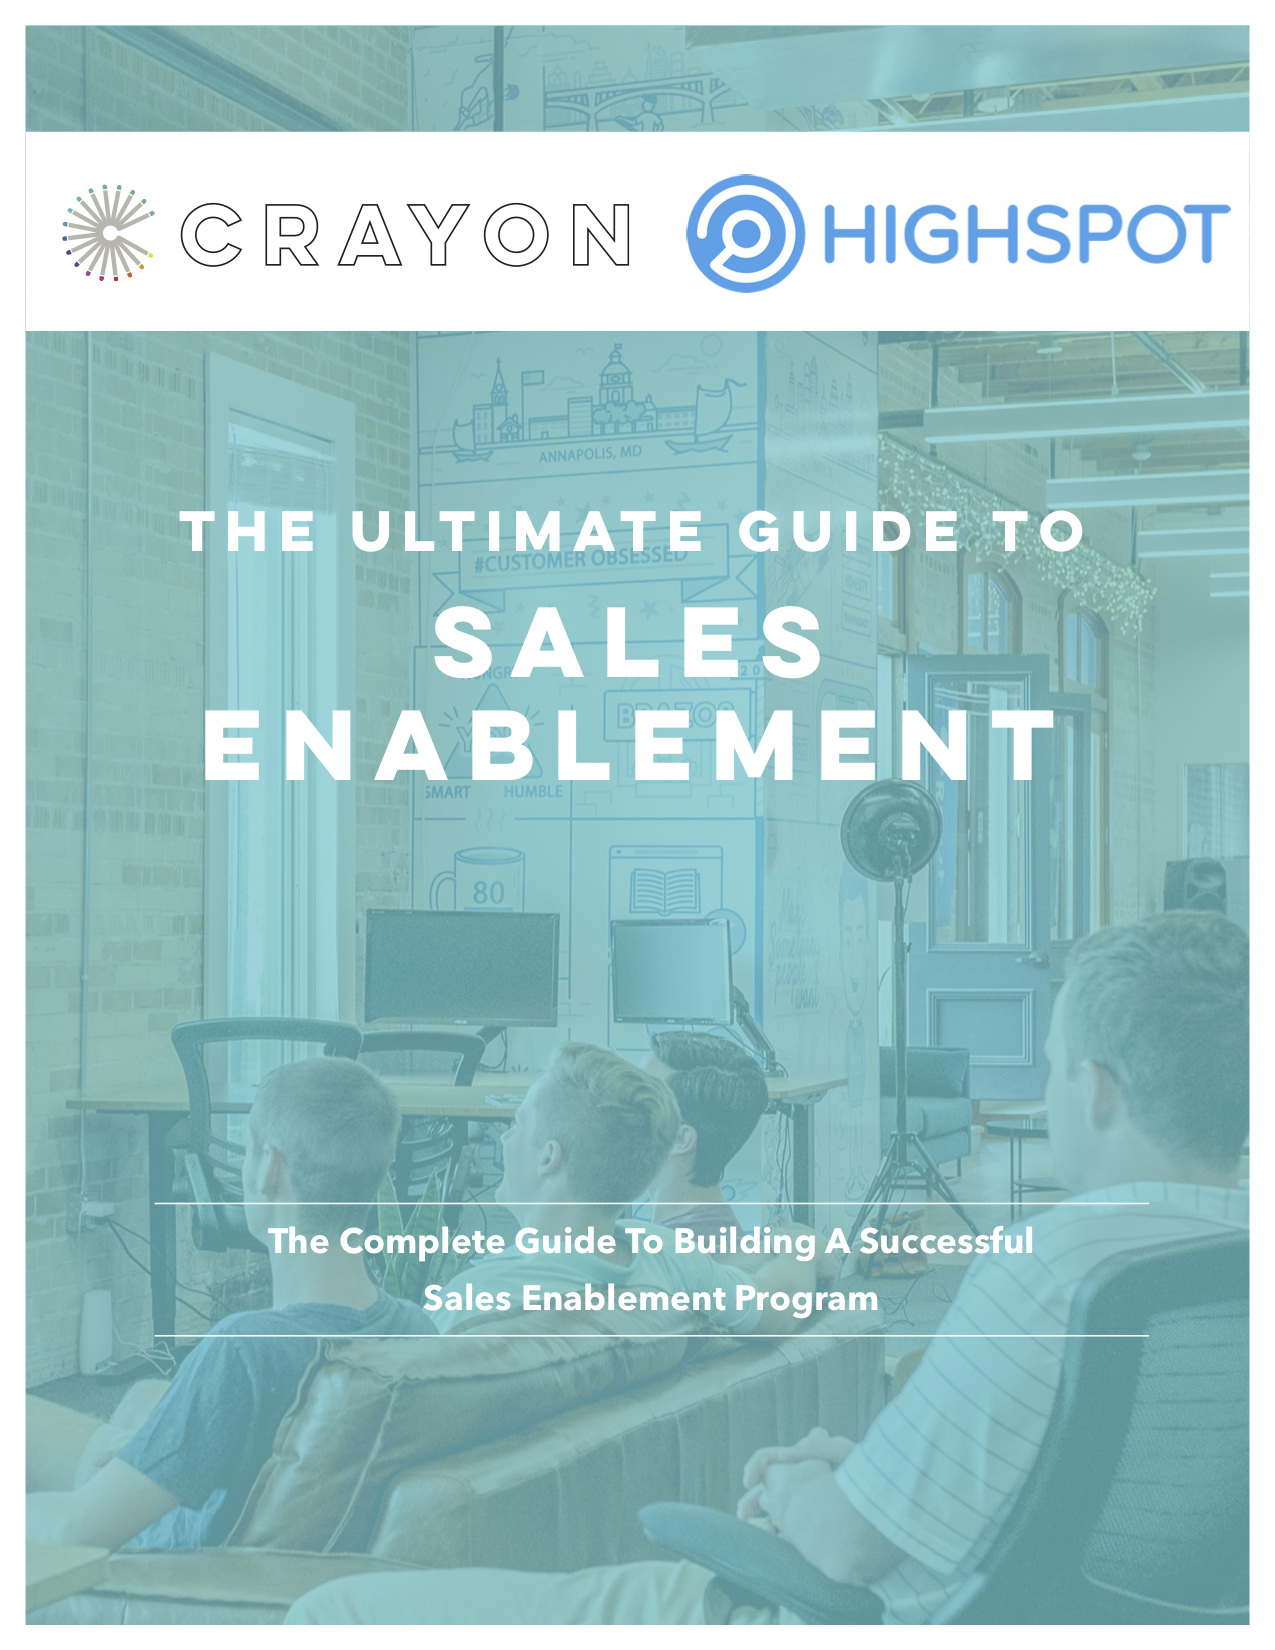 Sales Enablement ebookfinalED-1